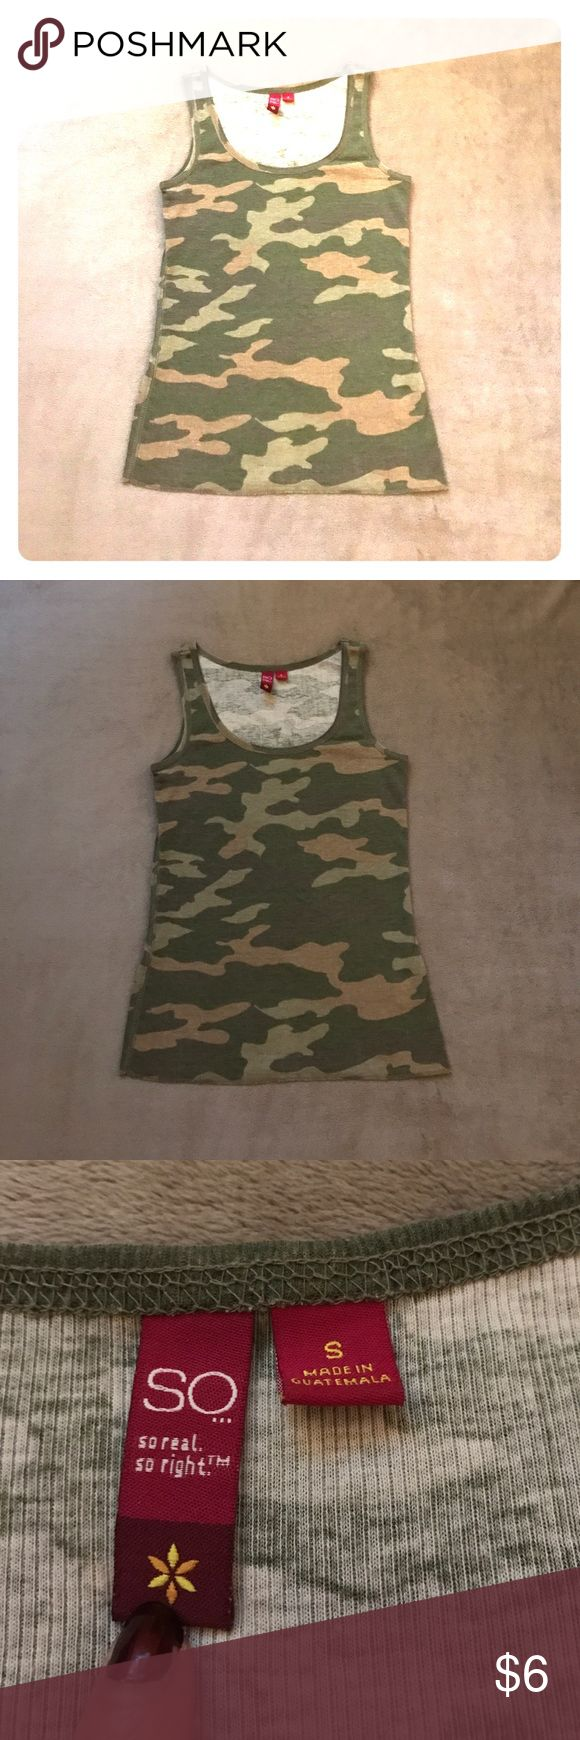 "Camo Tank Top Ribbed camo tank top in good used condition.  Measures approximately 14"" from armpit to armpit lying flat.  Has stretch to it.  Price is firm unless bundled. Tops Tank Tops"